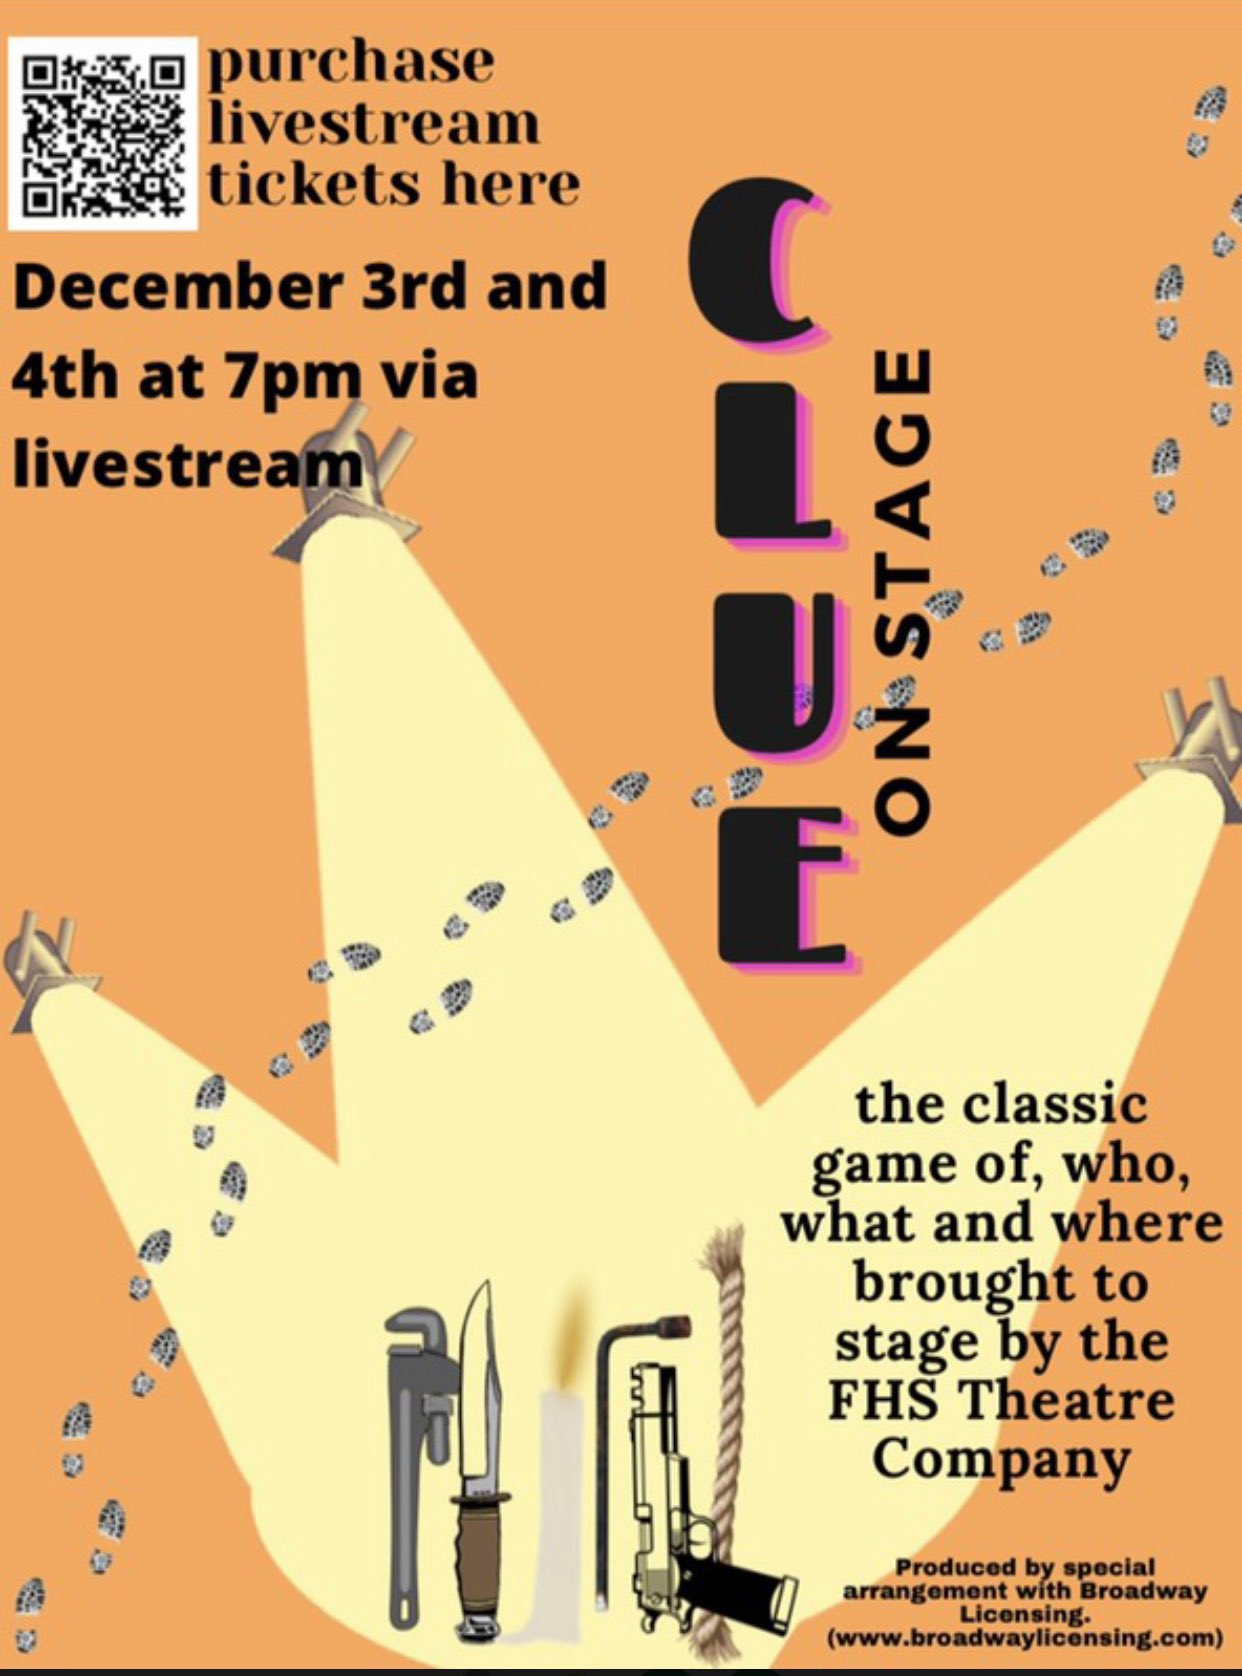 FHS Theatre Company: tickets on sale for CLUE - Dec 3 and Dec 4